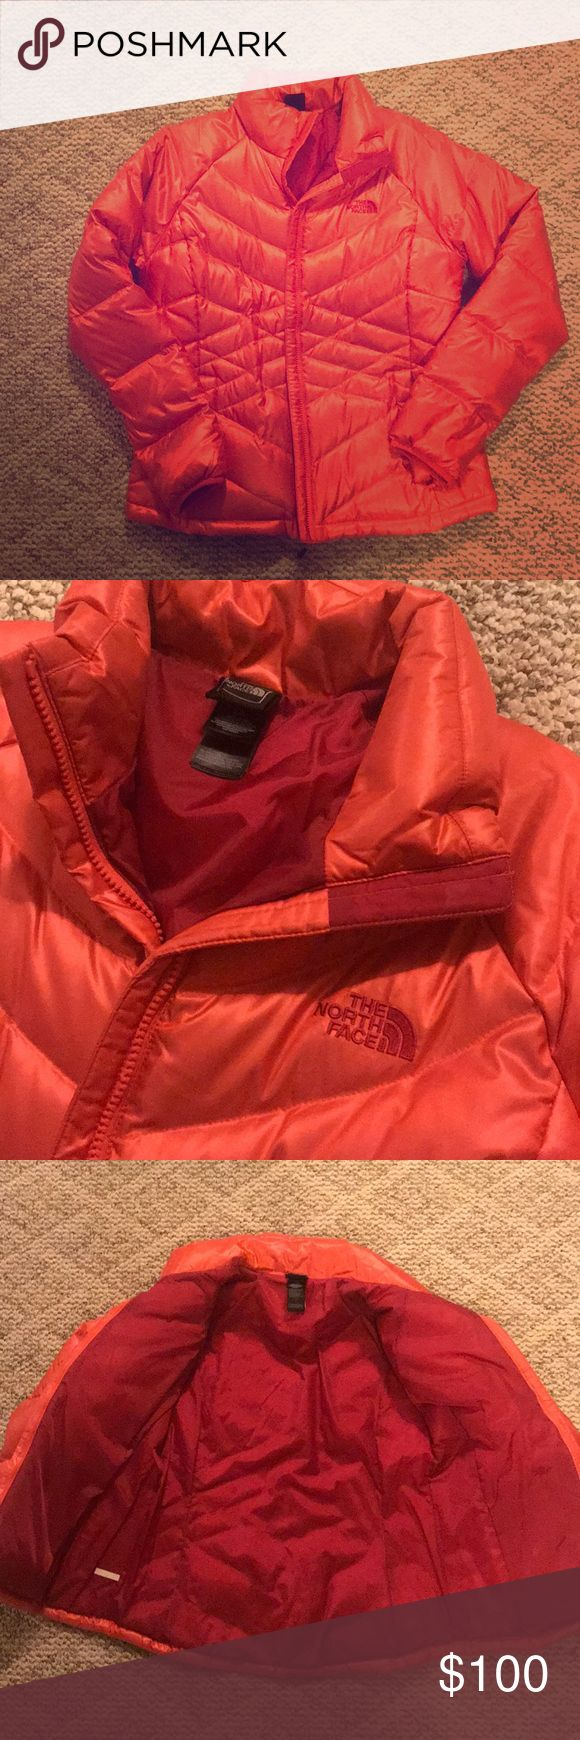 Women's North Face Winter Coat Women's North Face Aconcagua Jacket Size: Large Worn 3-4 times, no signs of wear at all! Color:  Rambutan Pink The North Face Jackets & Coats Puffers